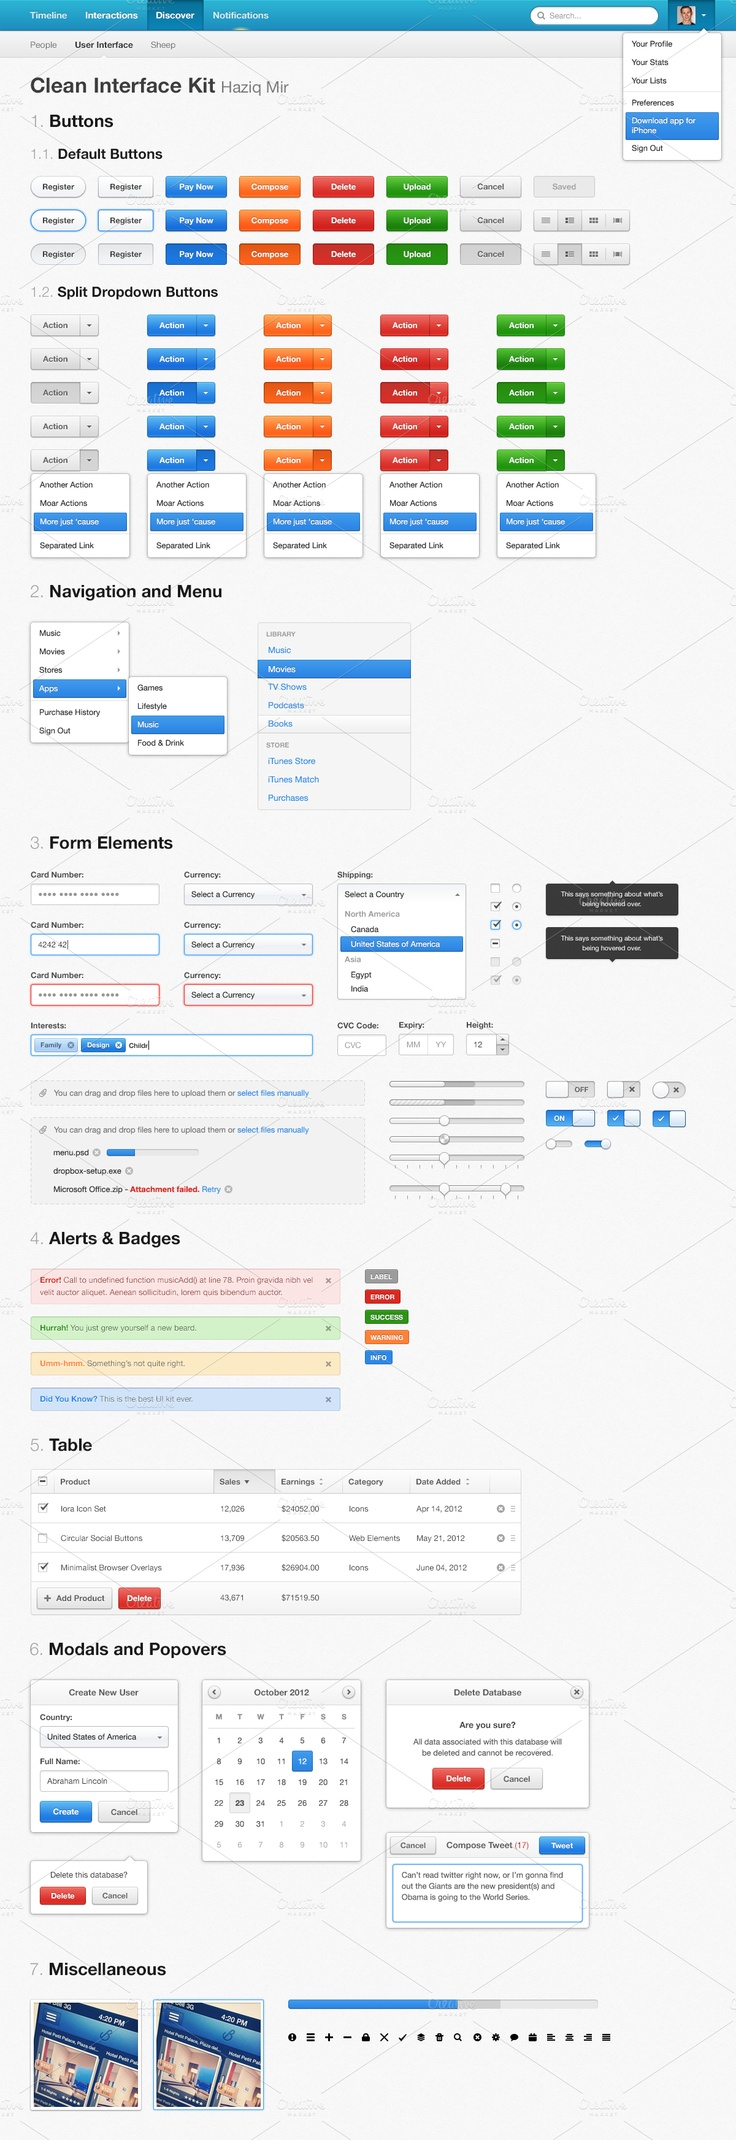 Clean Interface Kit  by haziqmir